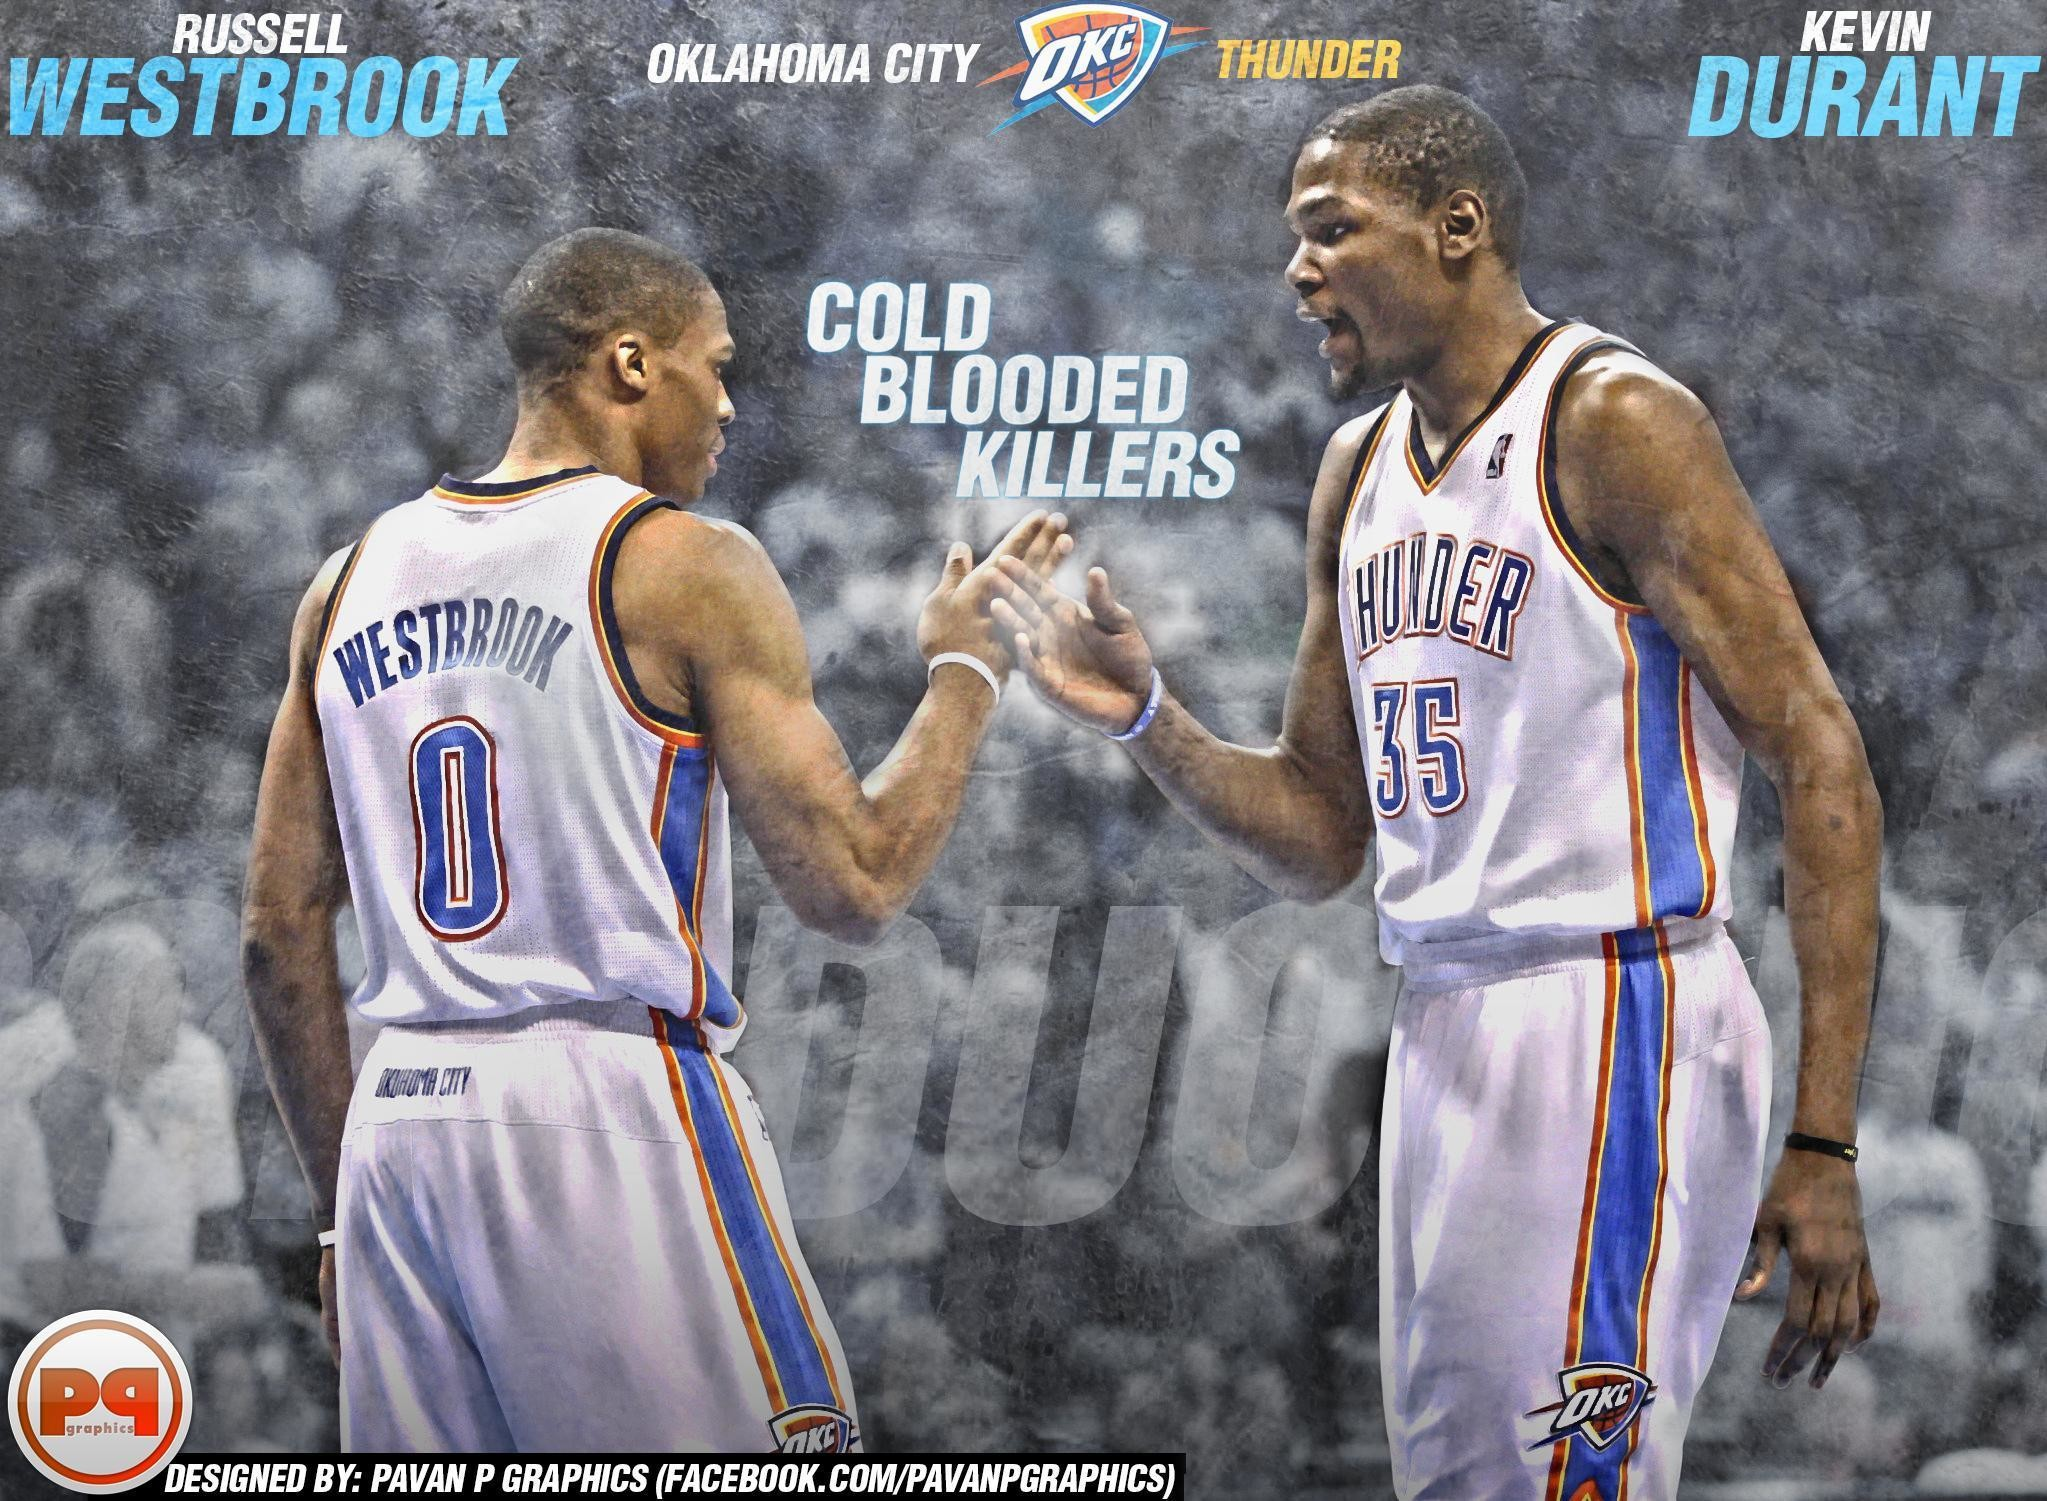 Kevin Durant And Russell Westbrook Wallpapers 2017 – Wallpaper Cave